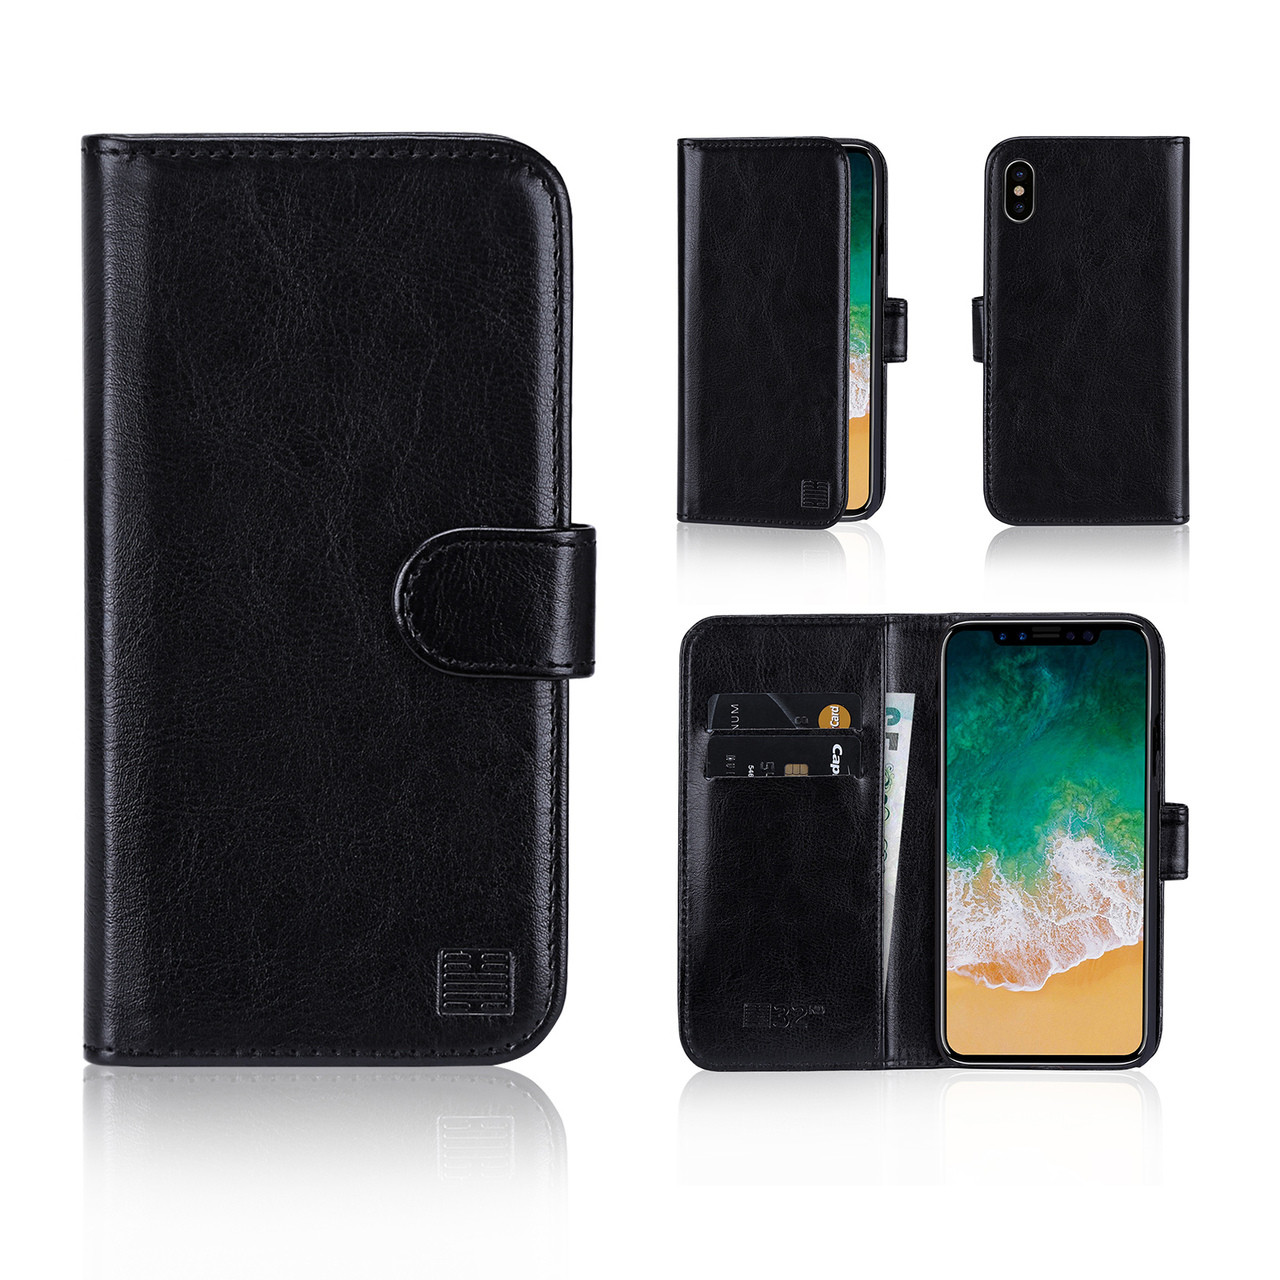 reputable site d1285 8b9b8 Apple iPhone X / XS PU Leather Book Wallet Case - Black